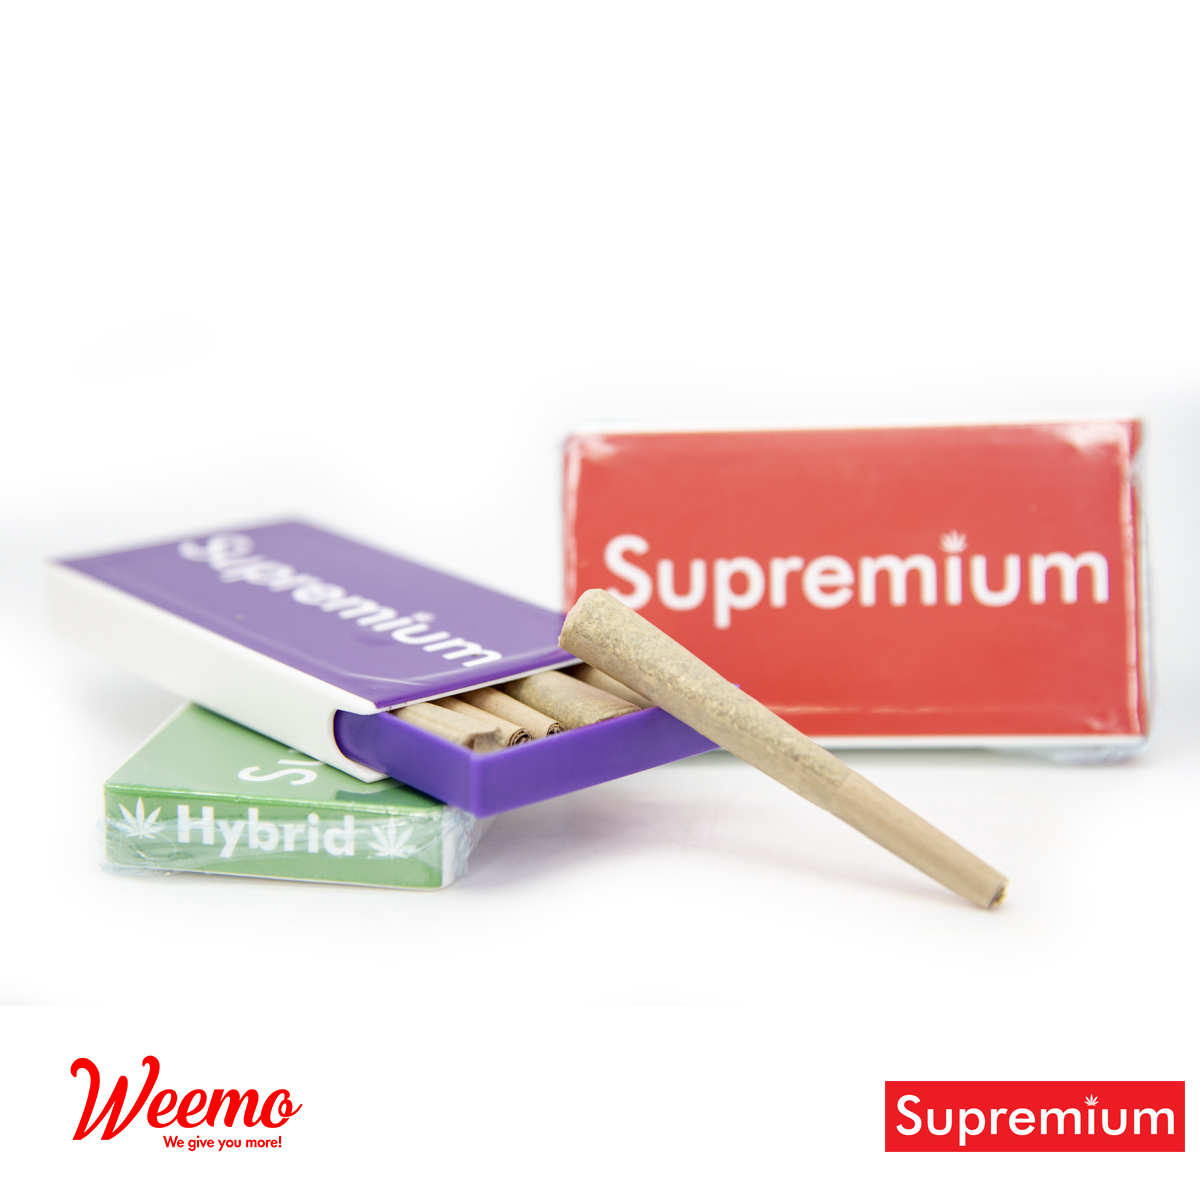 Supremium Sativa Pre-Rolls by Weemo - Image © 2020 Weemo. All Rights Reserved.